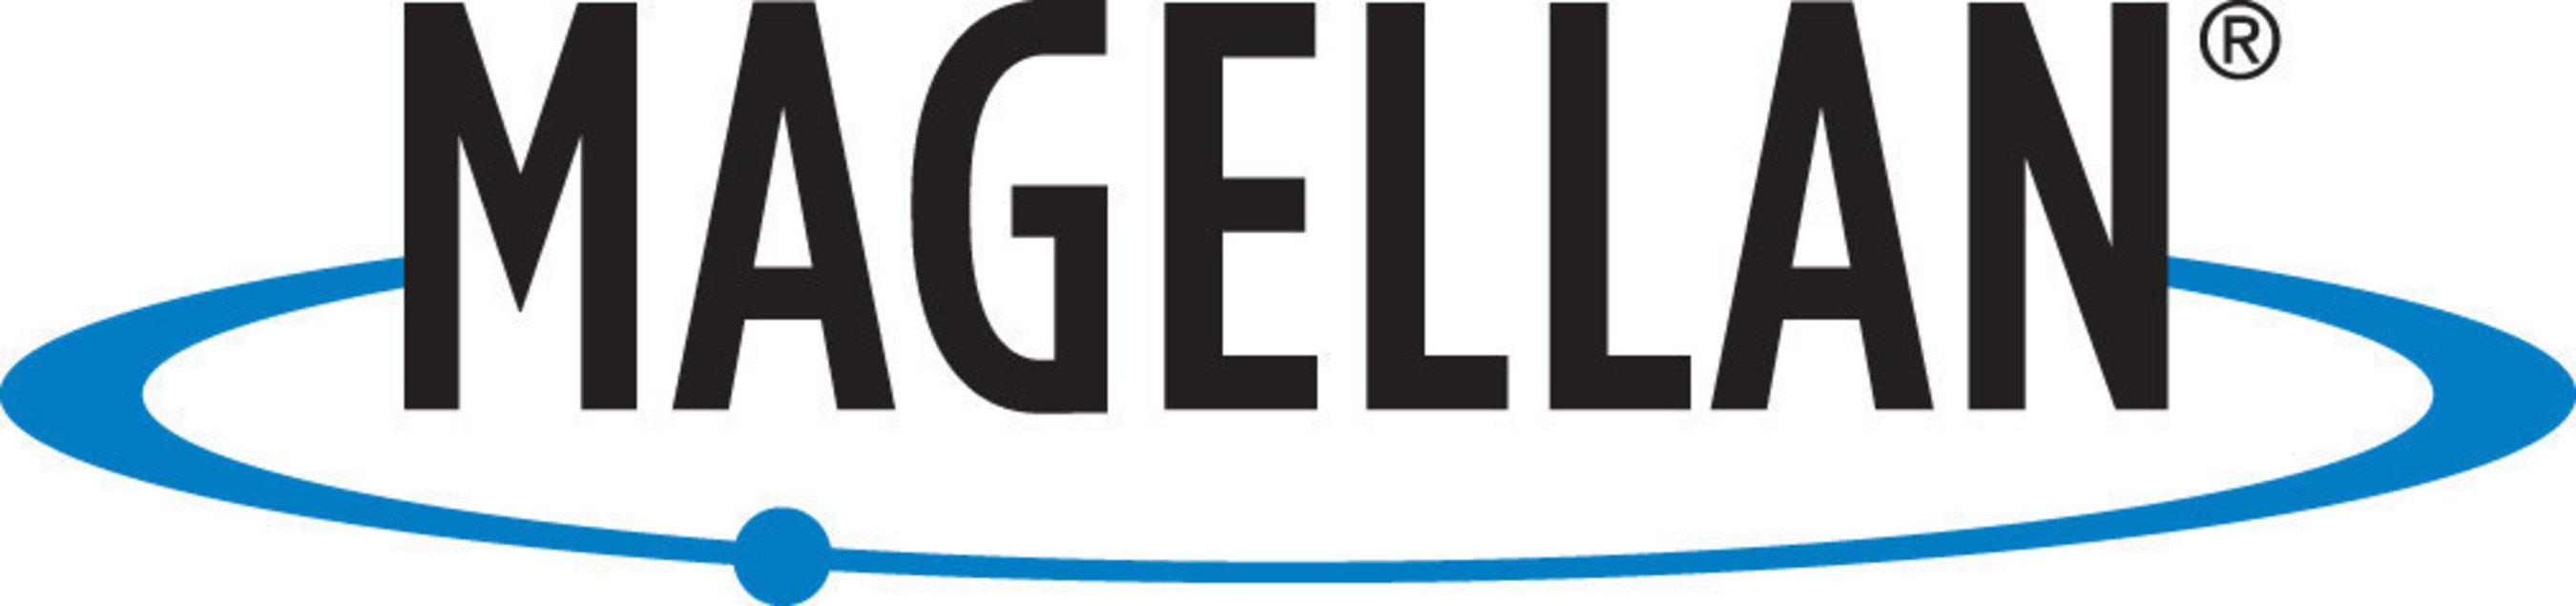 Magellan to Debut Return to Route (RTR) Technology at Connected Fleets USA 2015